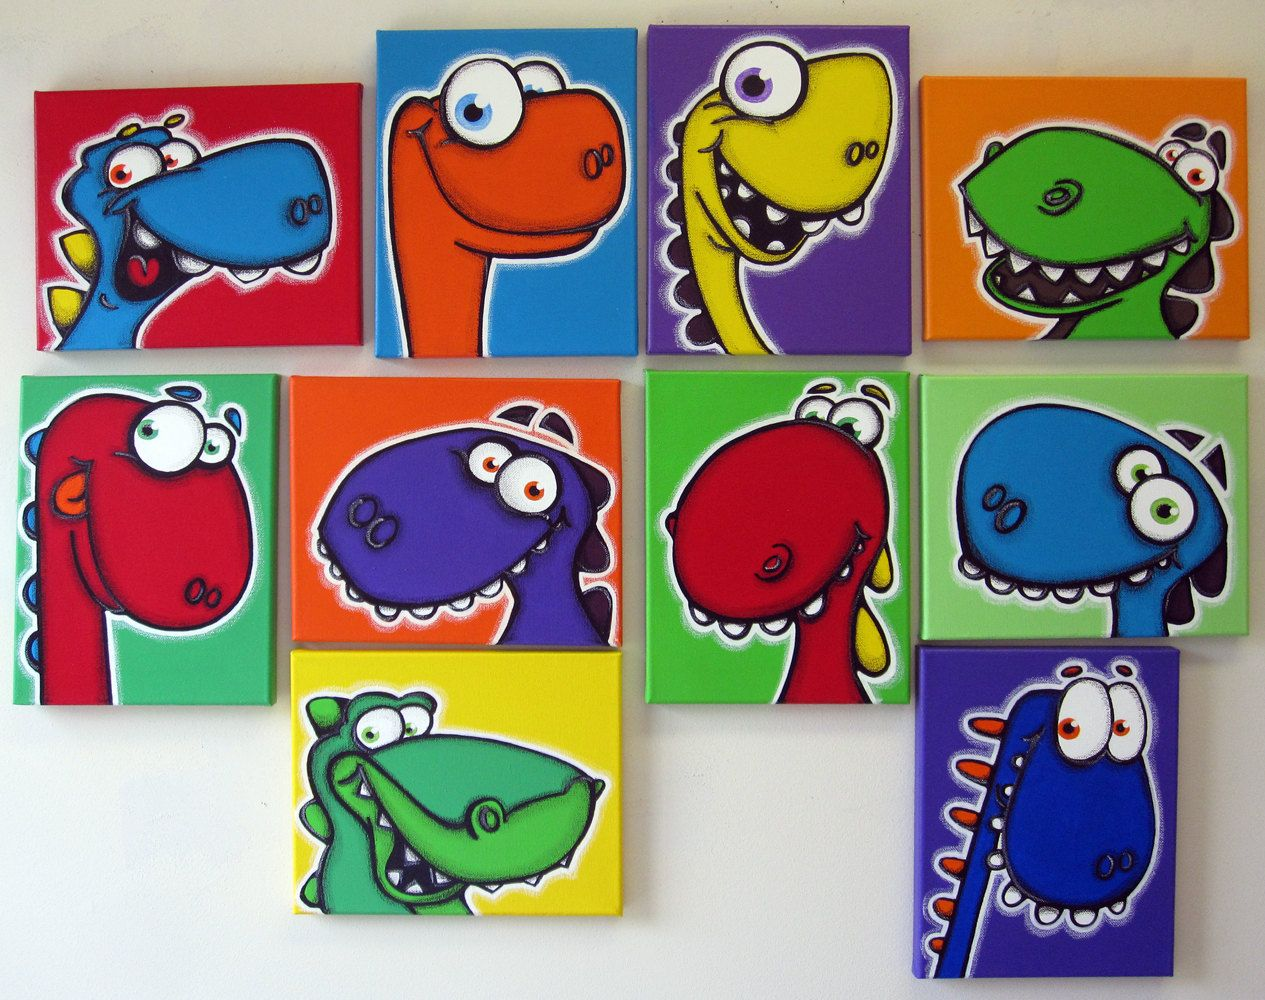 red monster 12x12 original painting on canvas for nursery or